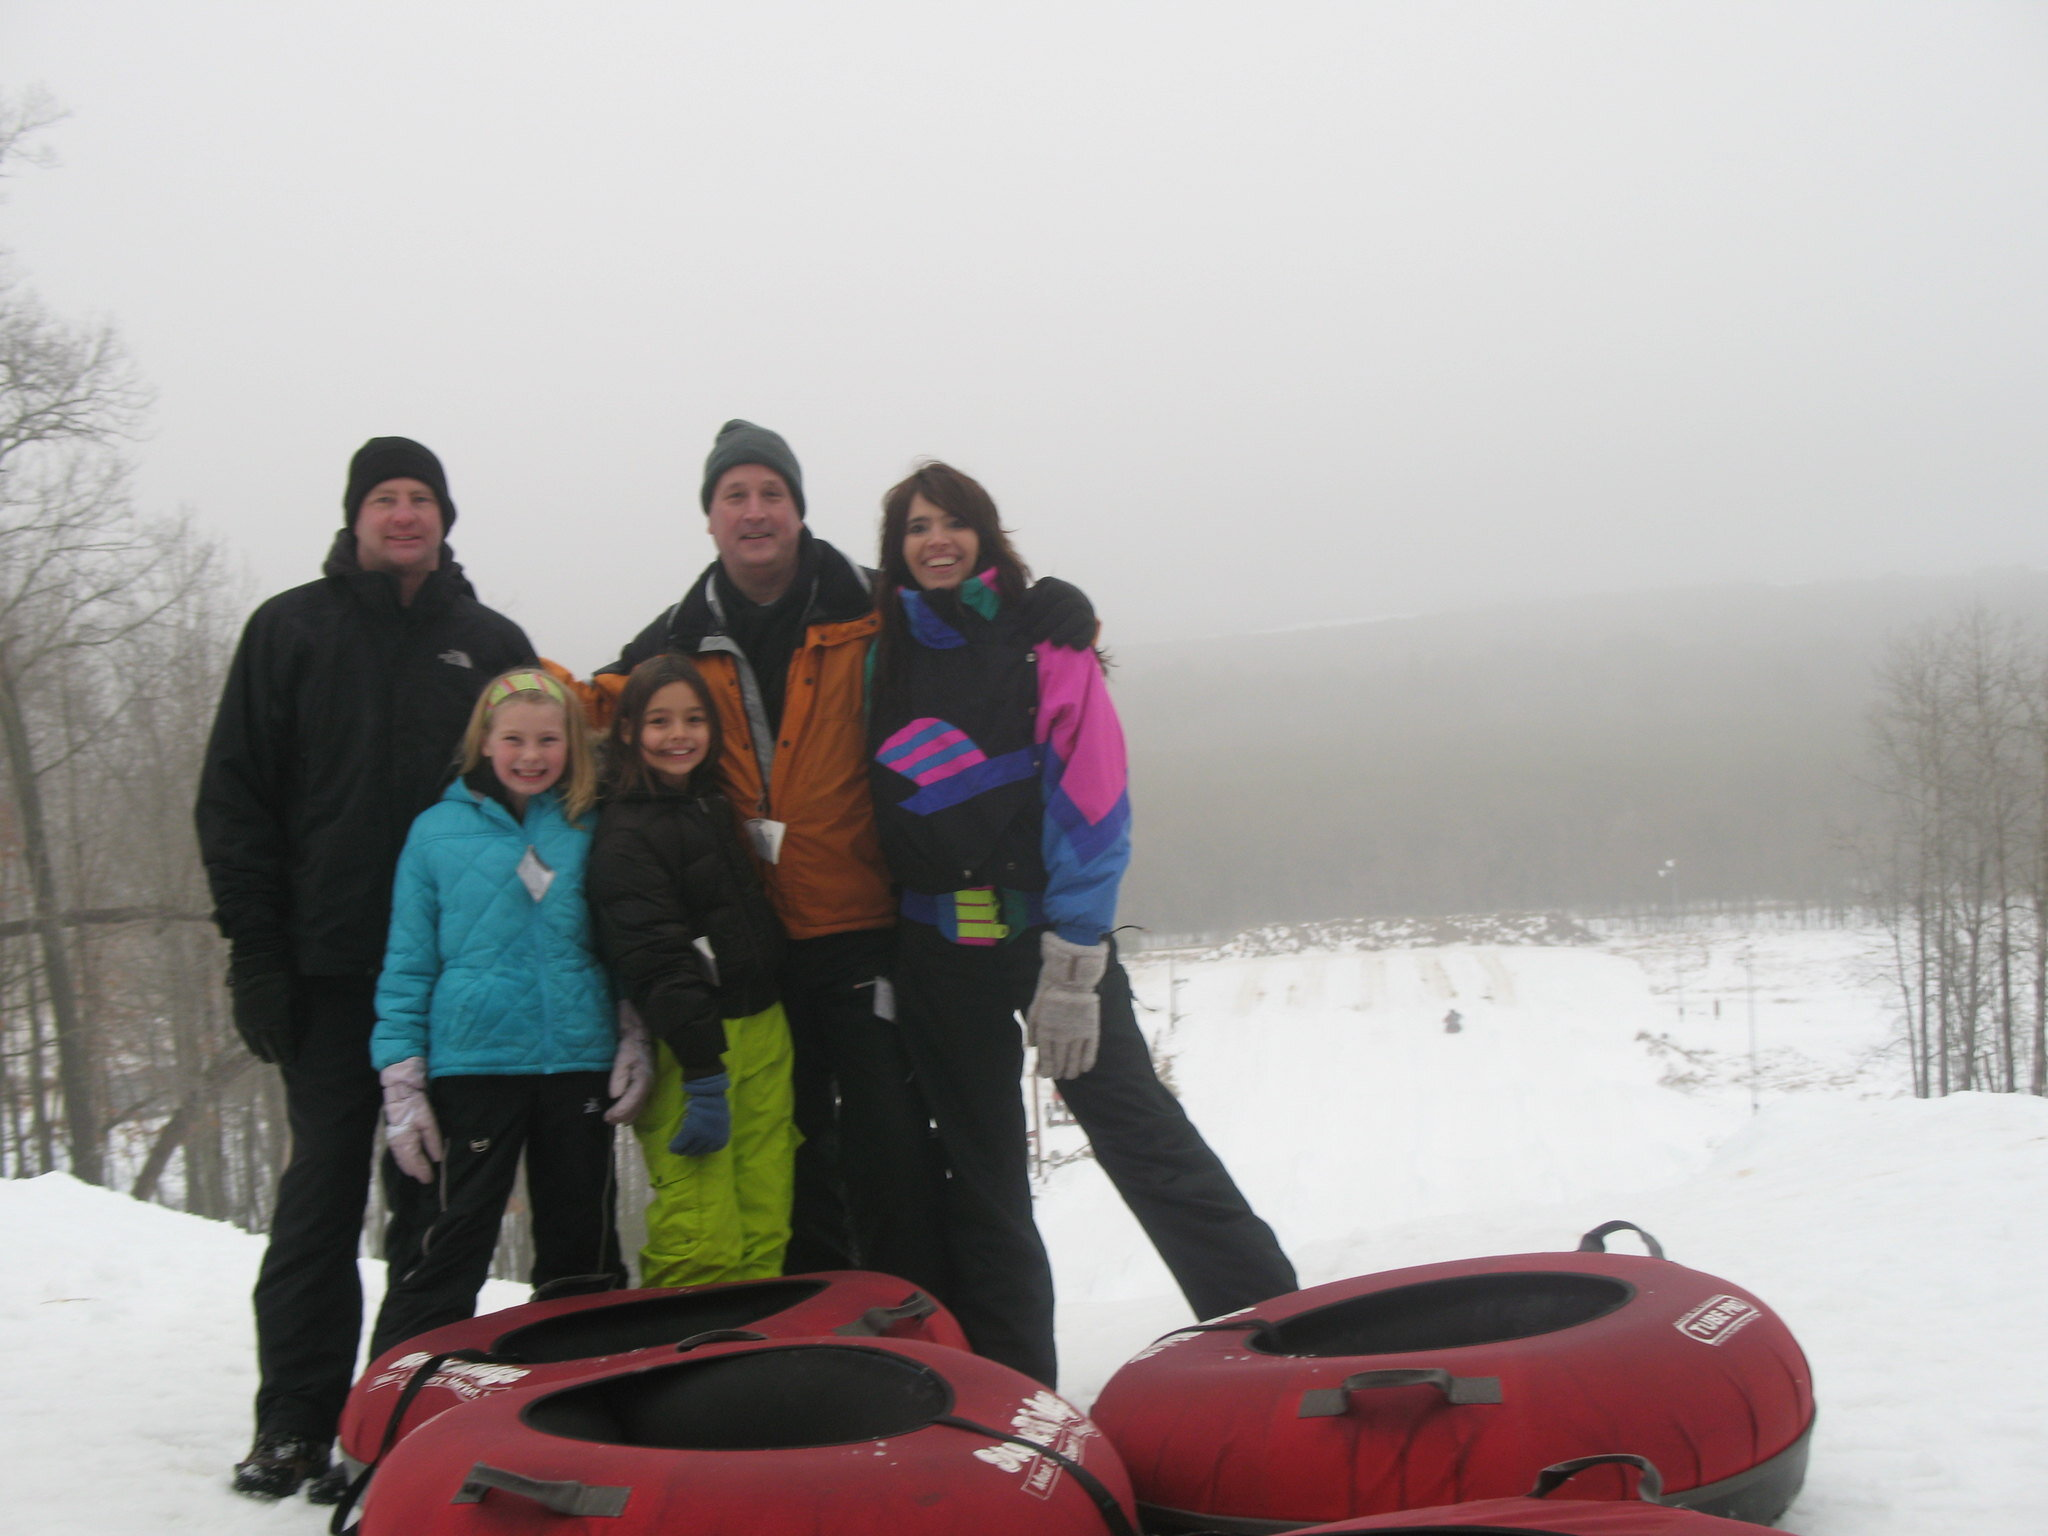 Family Tubing In Snow